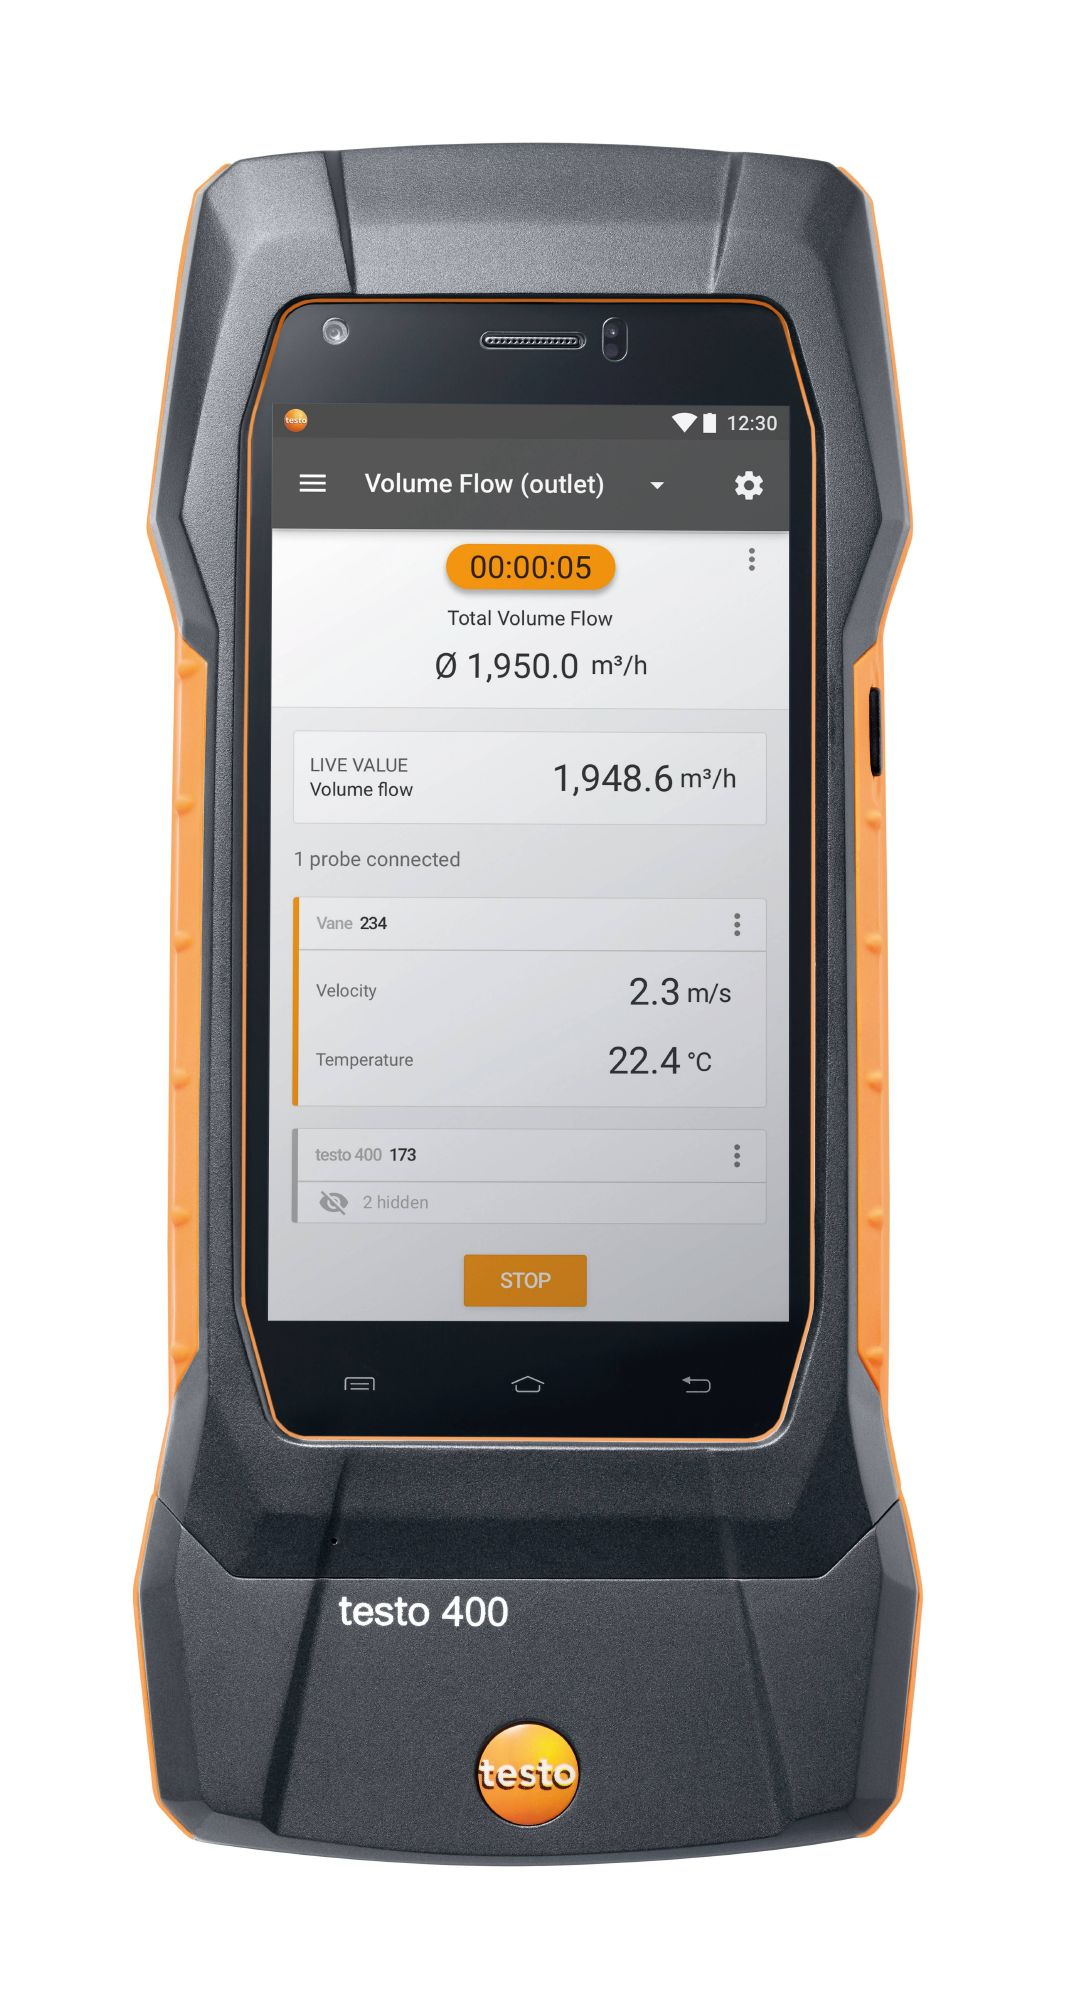 testo 400 universal IAQ instrument | Portable devices - with